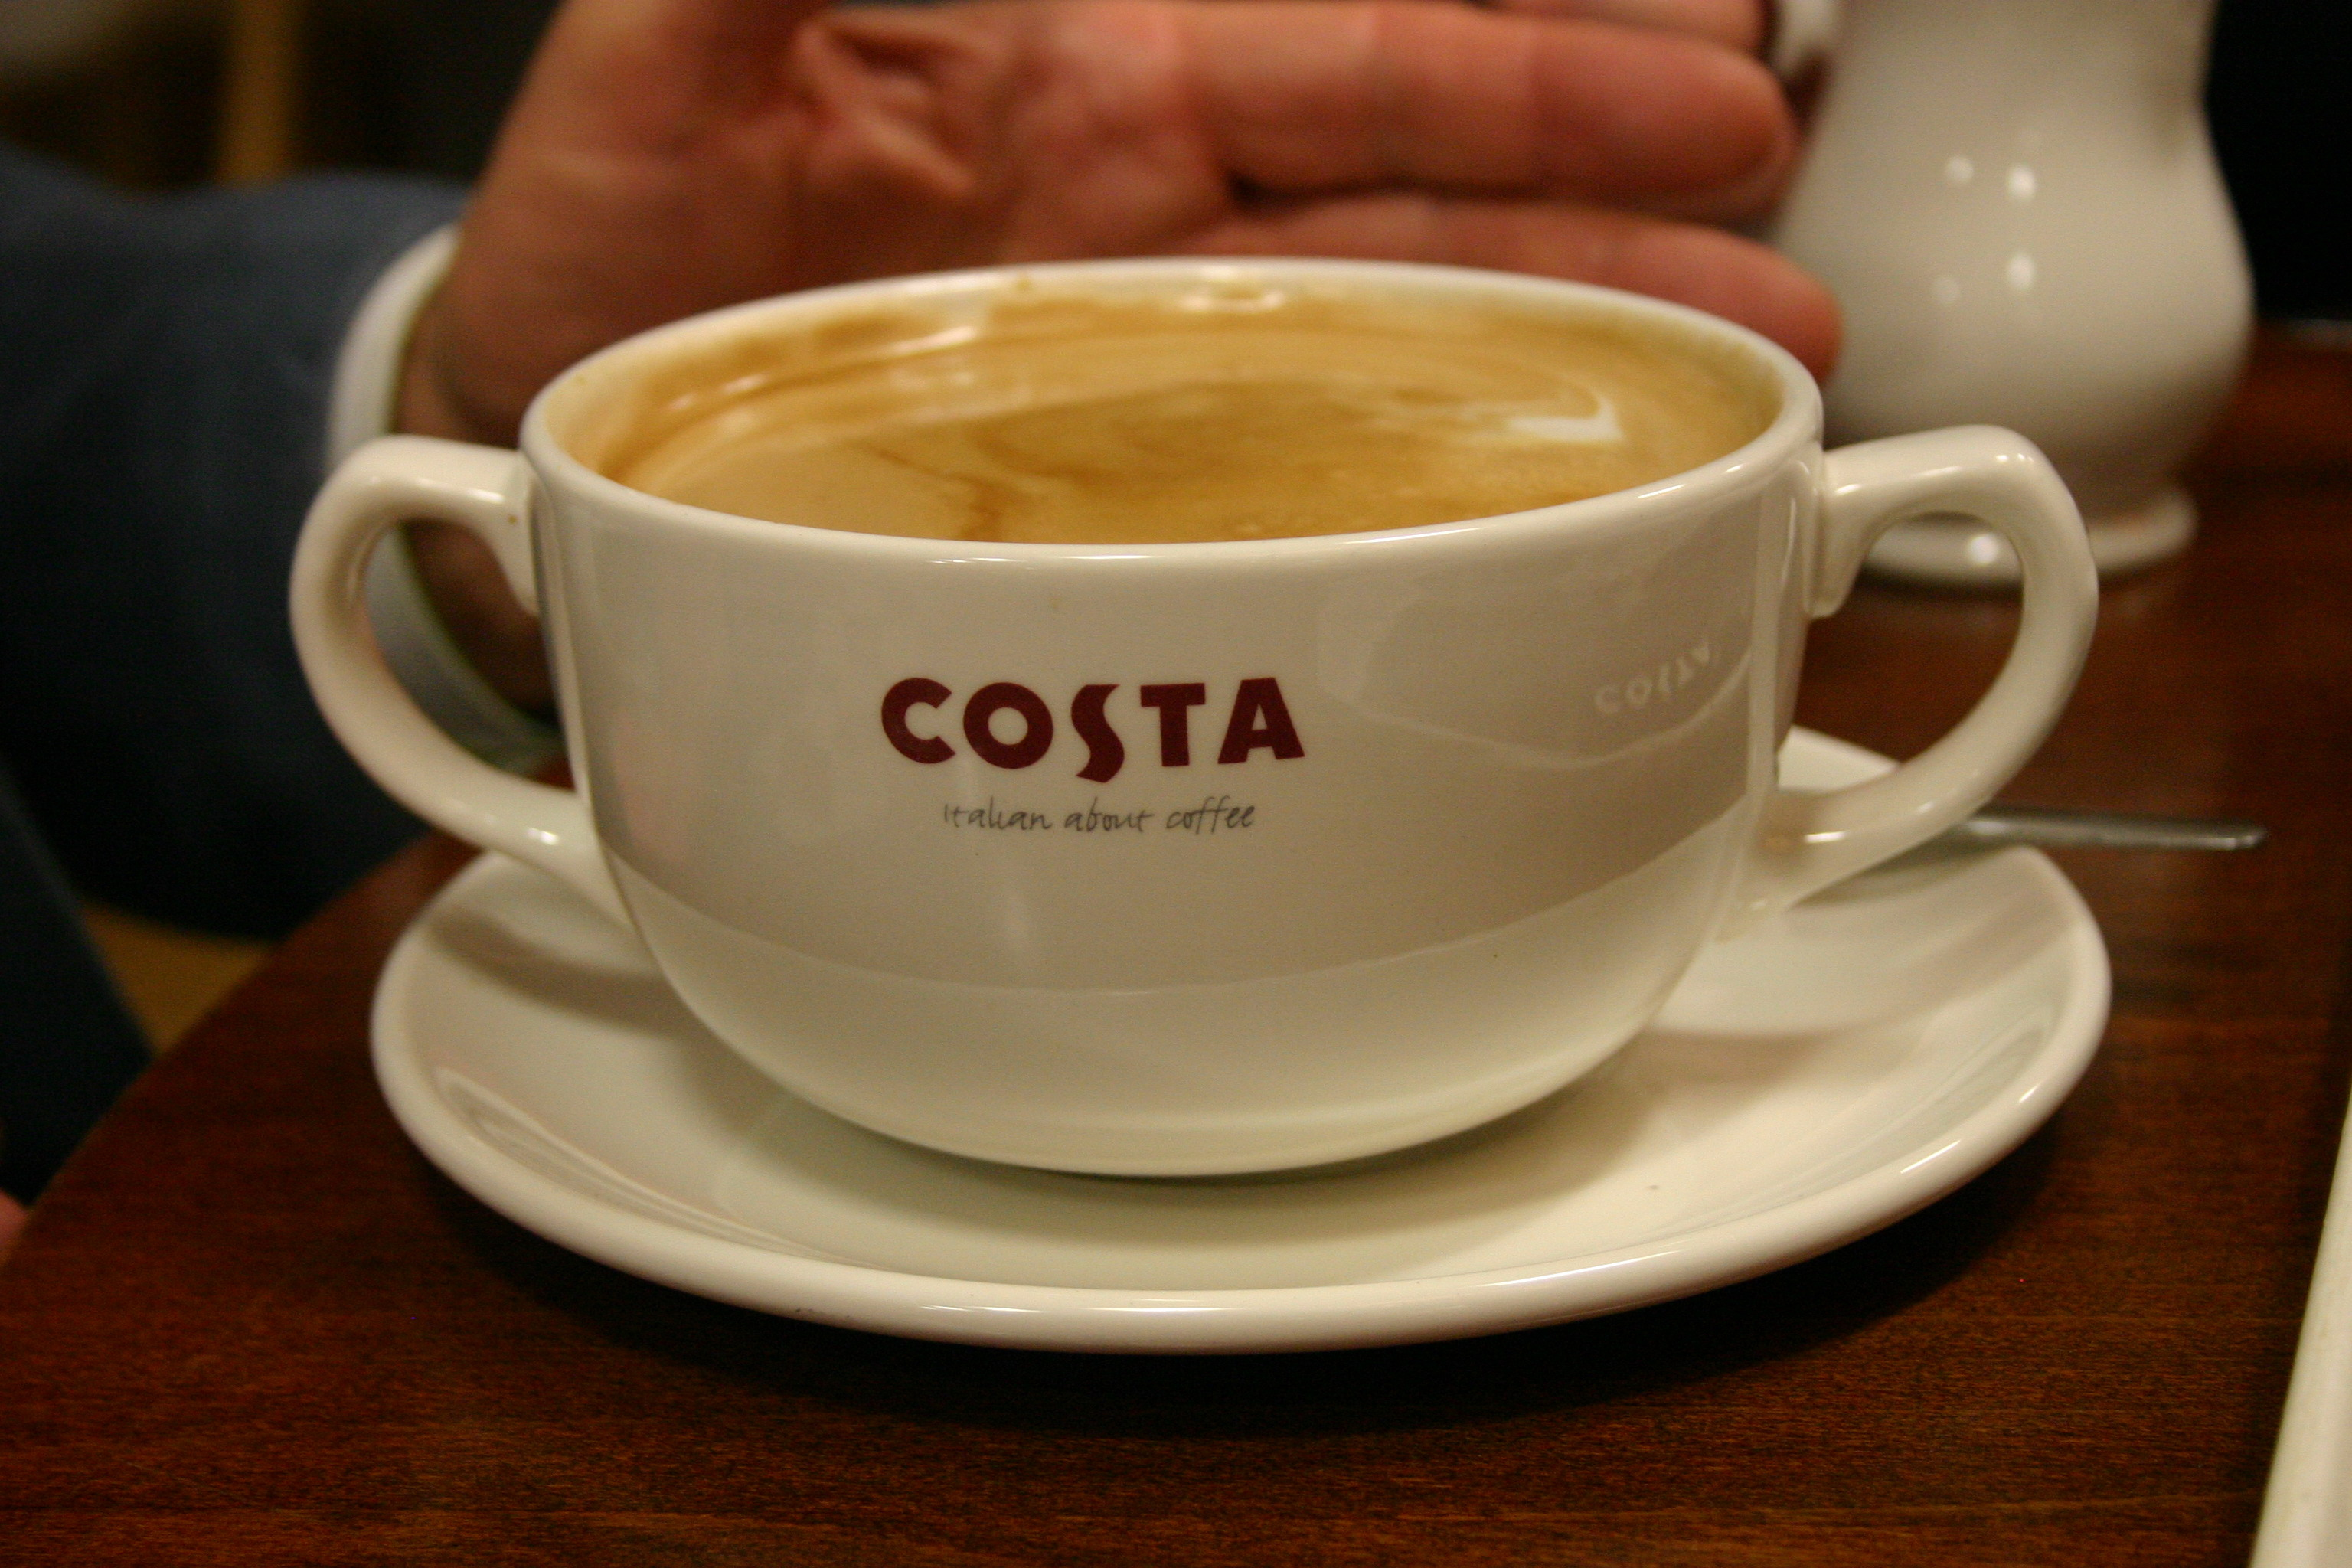 costa coffee article Both co-op and costa coffee will open storefronts on the famous cobbles of  coronation street, after  read exclusive registrant only articles.